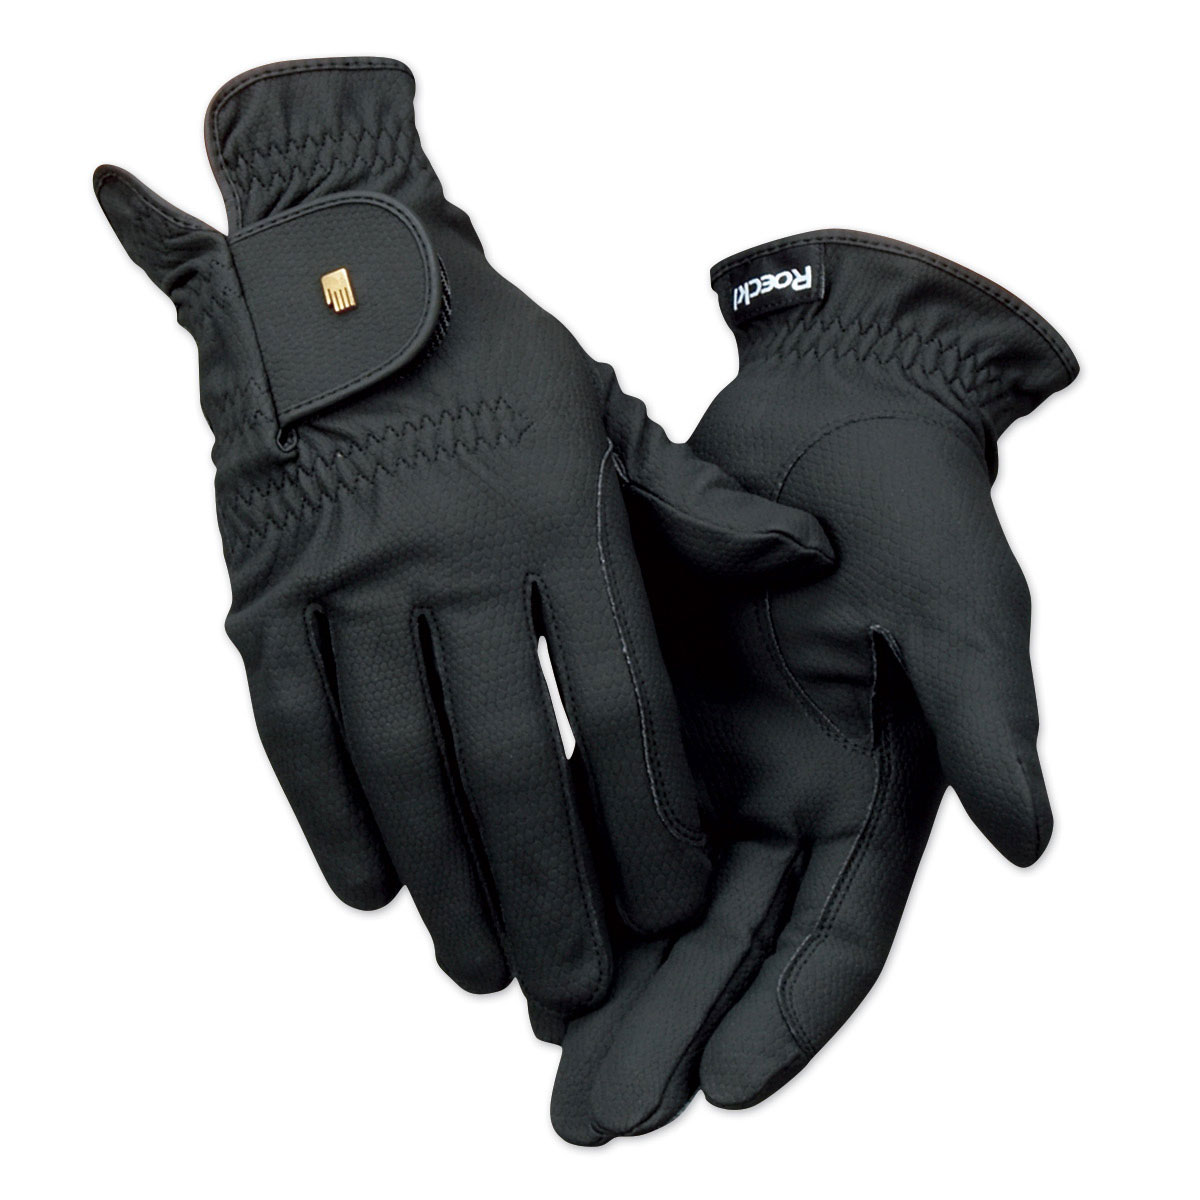 Roeckl-Grip Glove